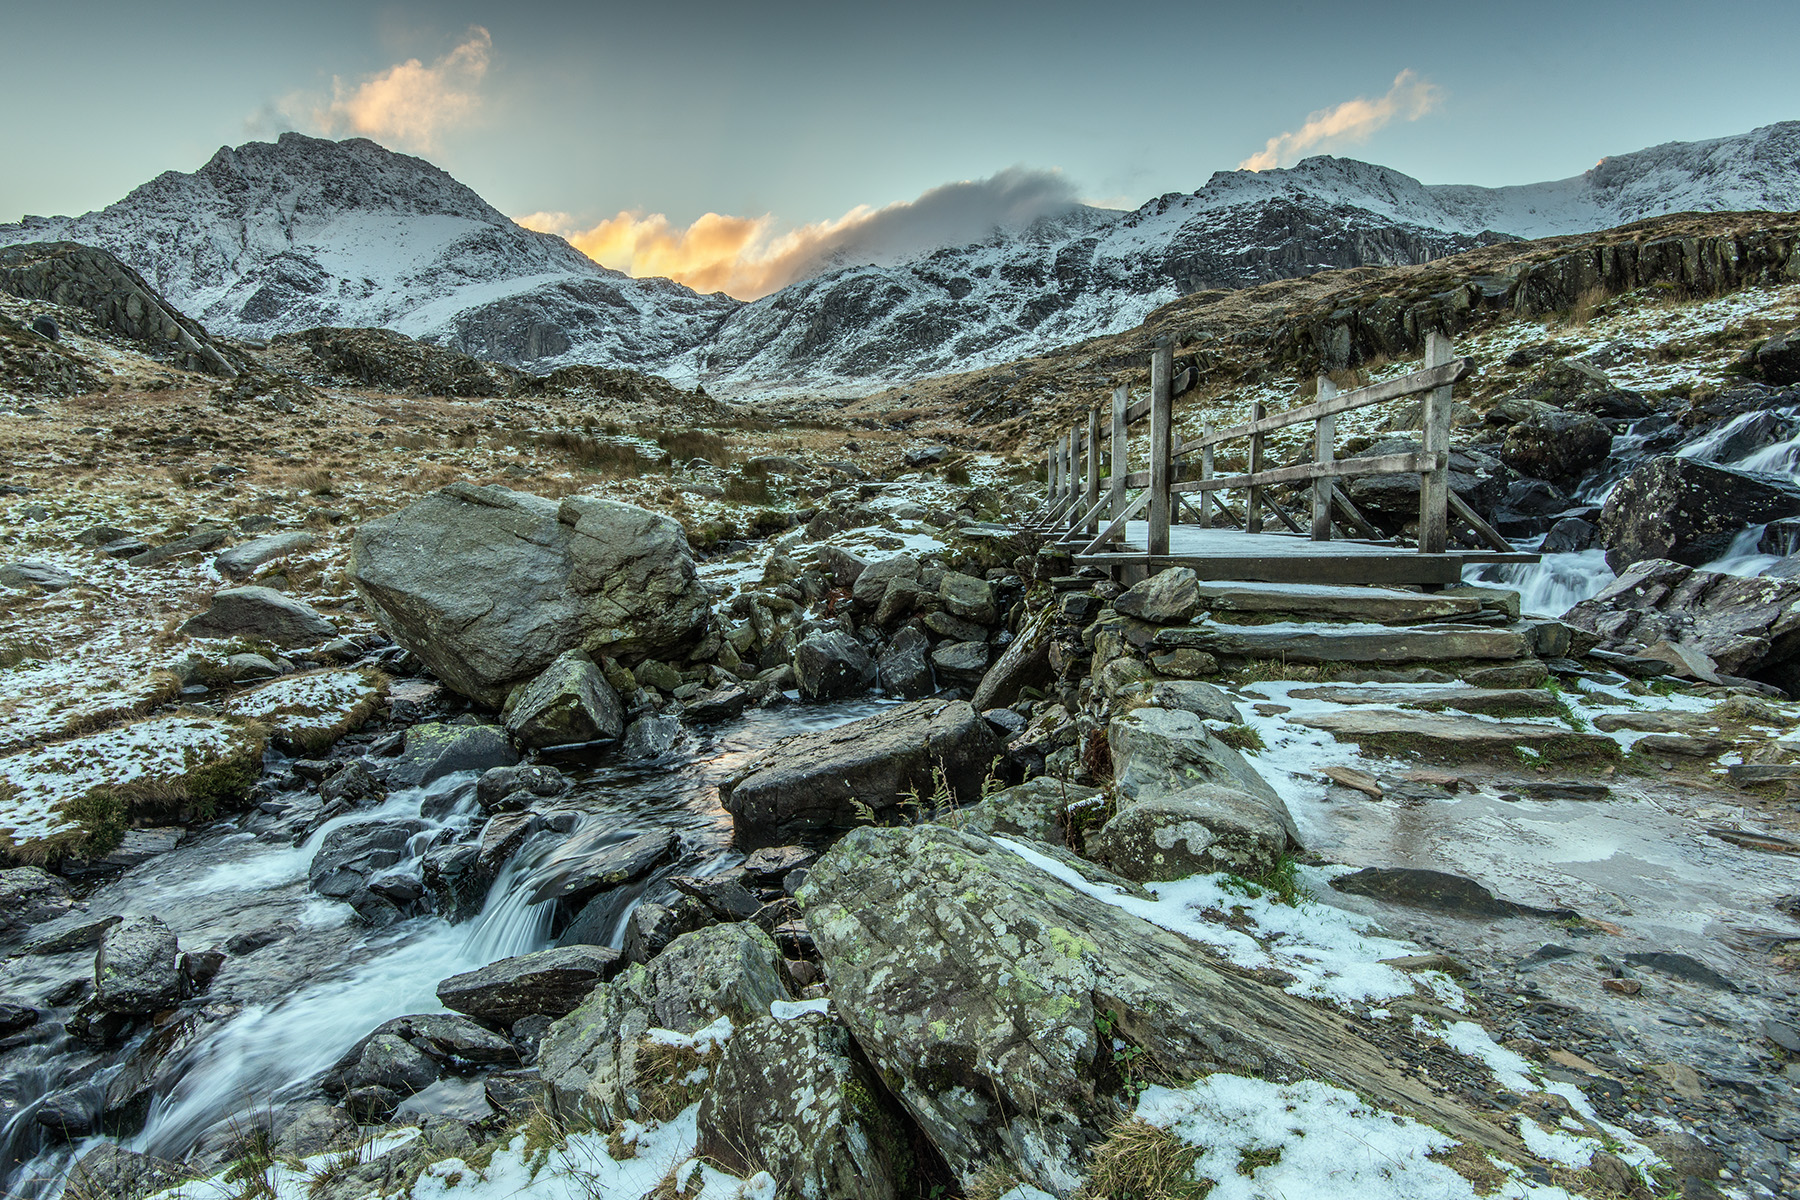 An icy approach to Tryfan and Cwm Idwal Nikon D800, Nikon 16-35 f/4 at 16mm, ISO200, 1/8s at f/16.Tripod. December. © Simon Kitchin